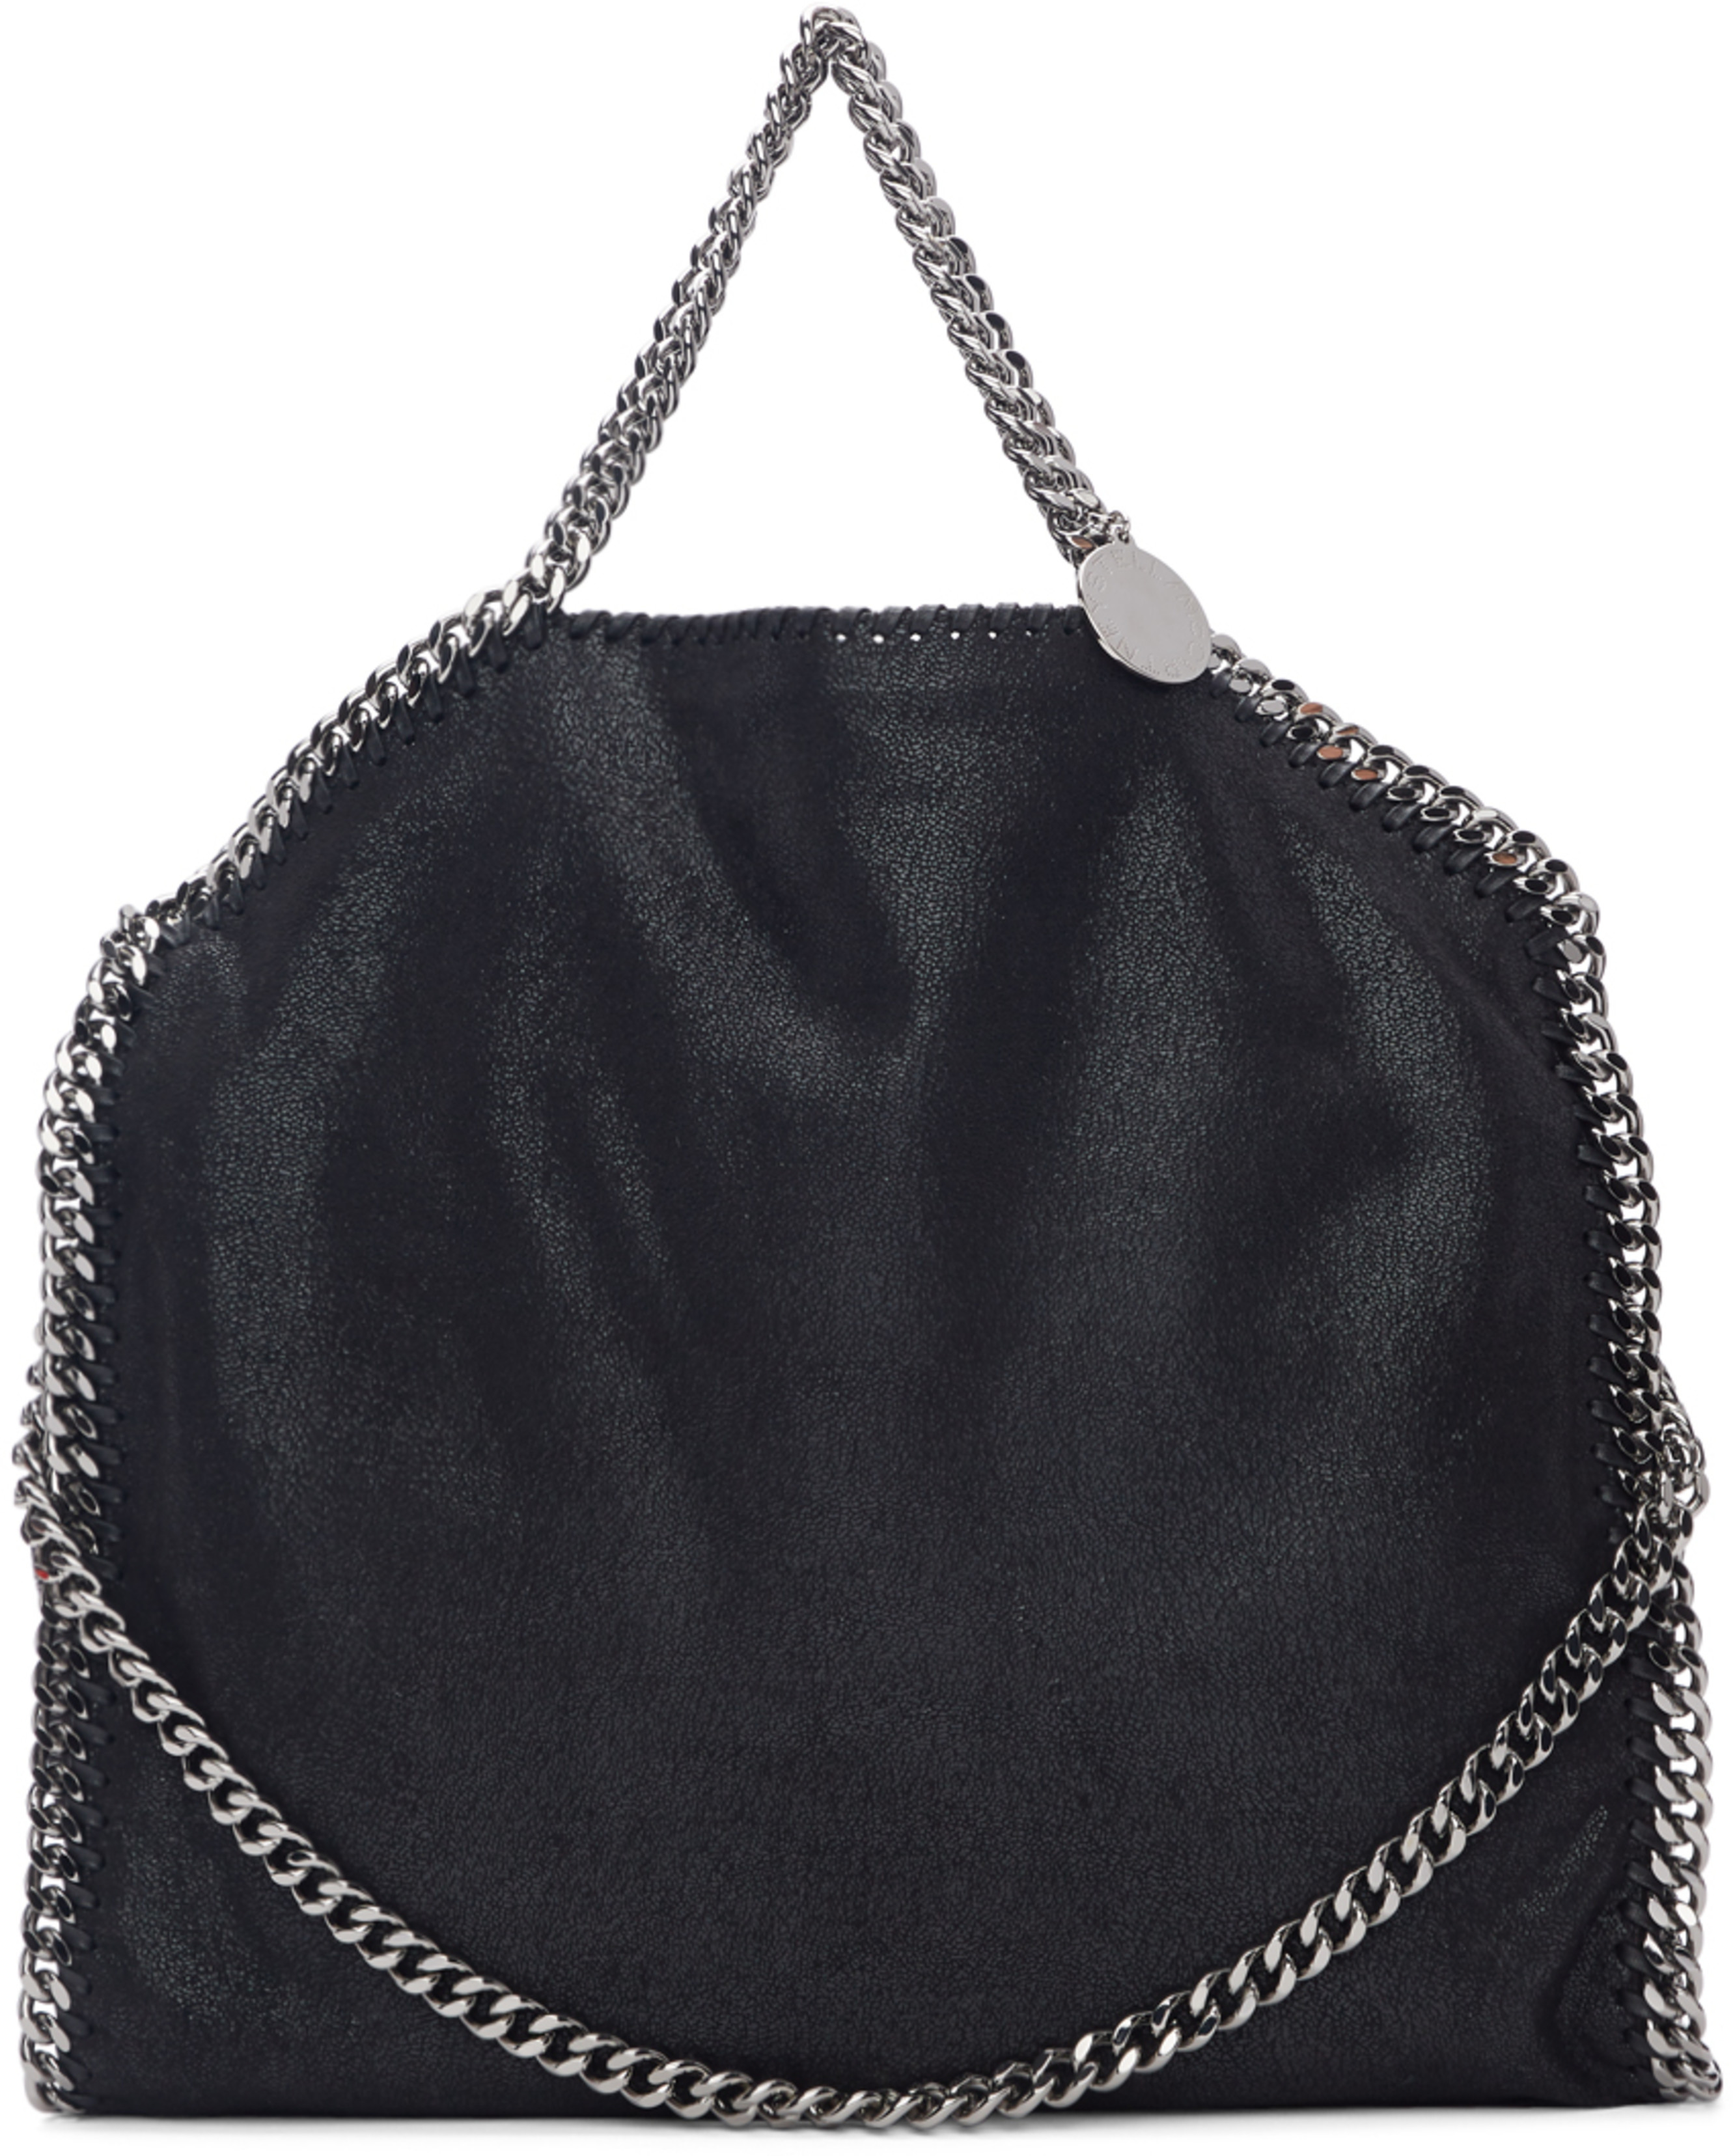 5ae23f7ad7 Stella Mccartney bags for Women